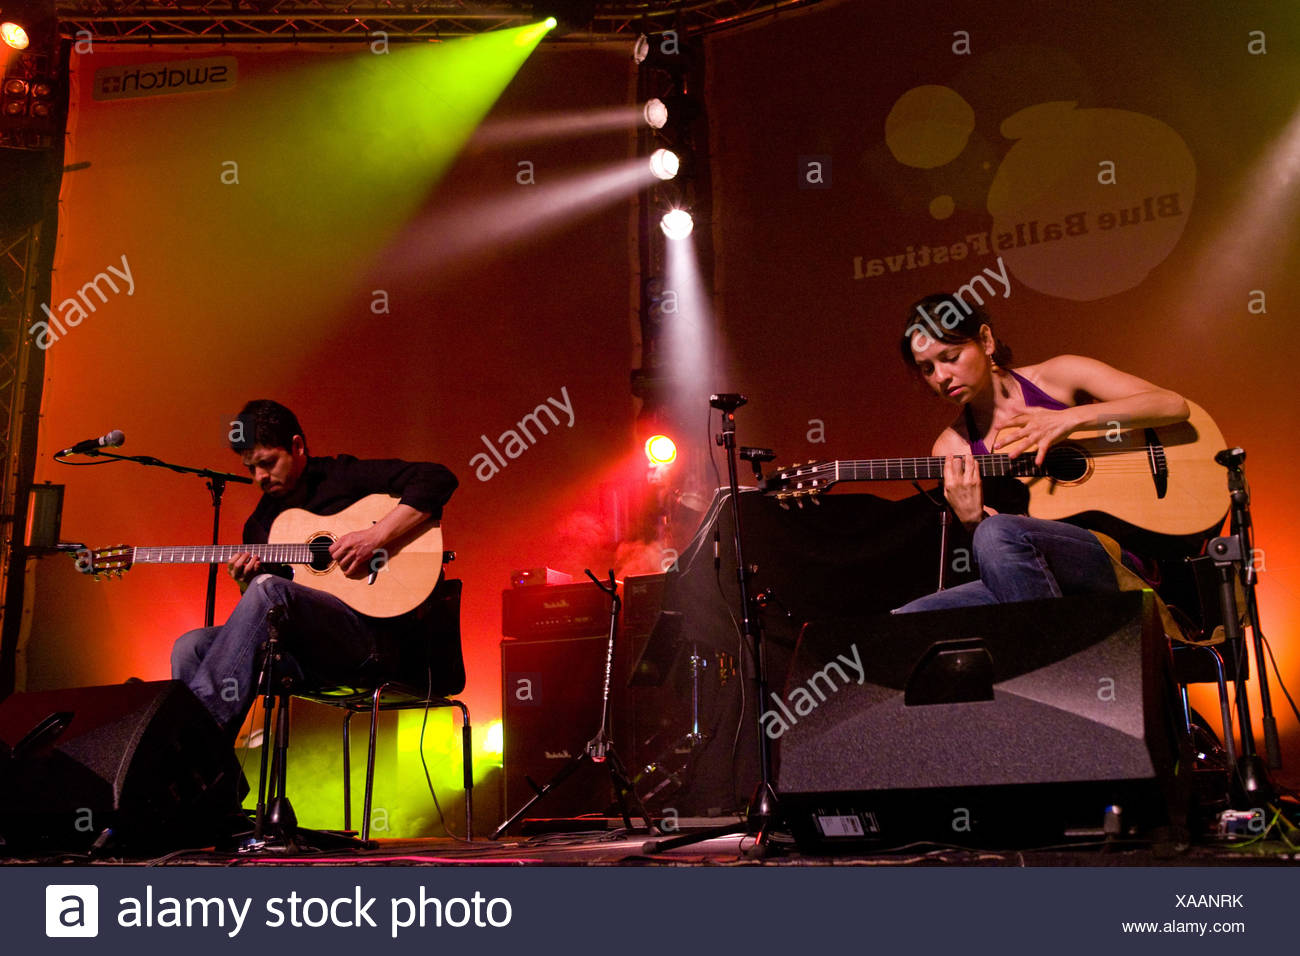 Mexican guitar duo Rodrigo Y Gabriela performing live at the Blue Balls Festival in the Lucerne Hall of the KKL in Lucerne, Swi - Stock Image